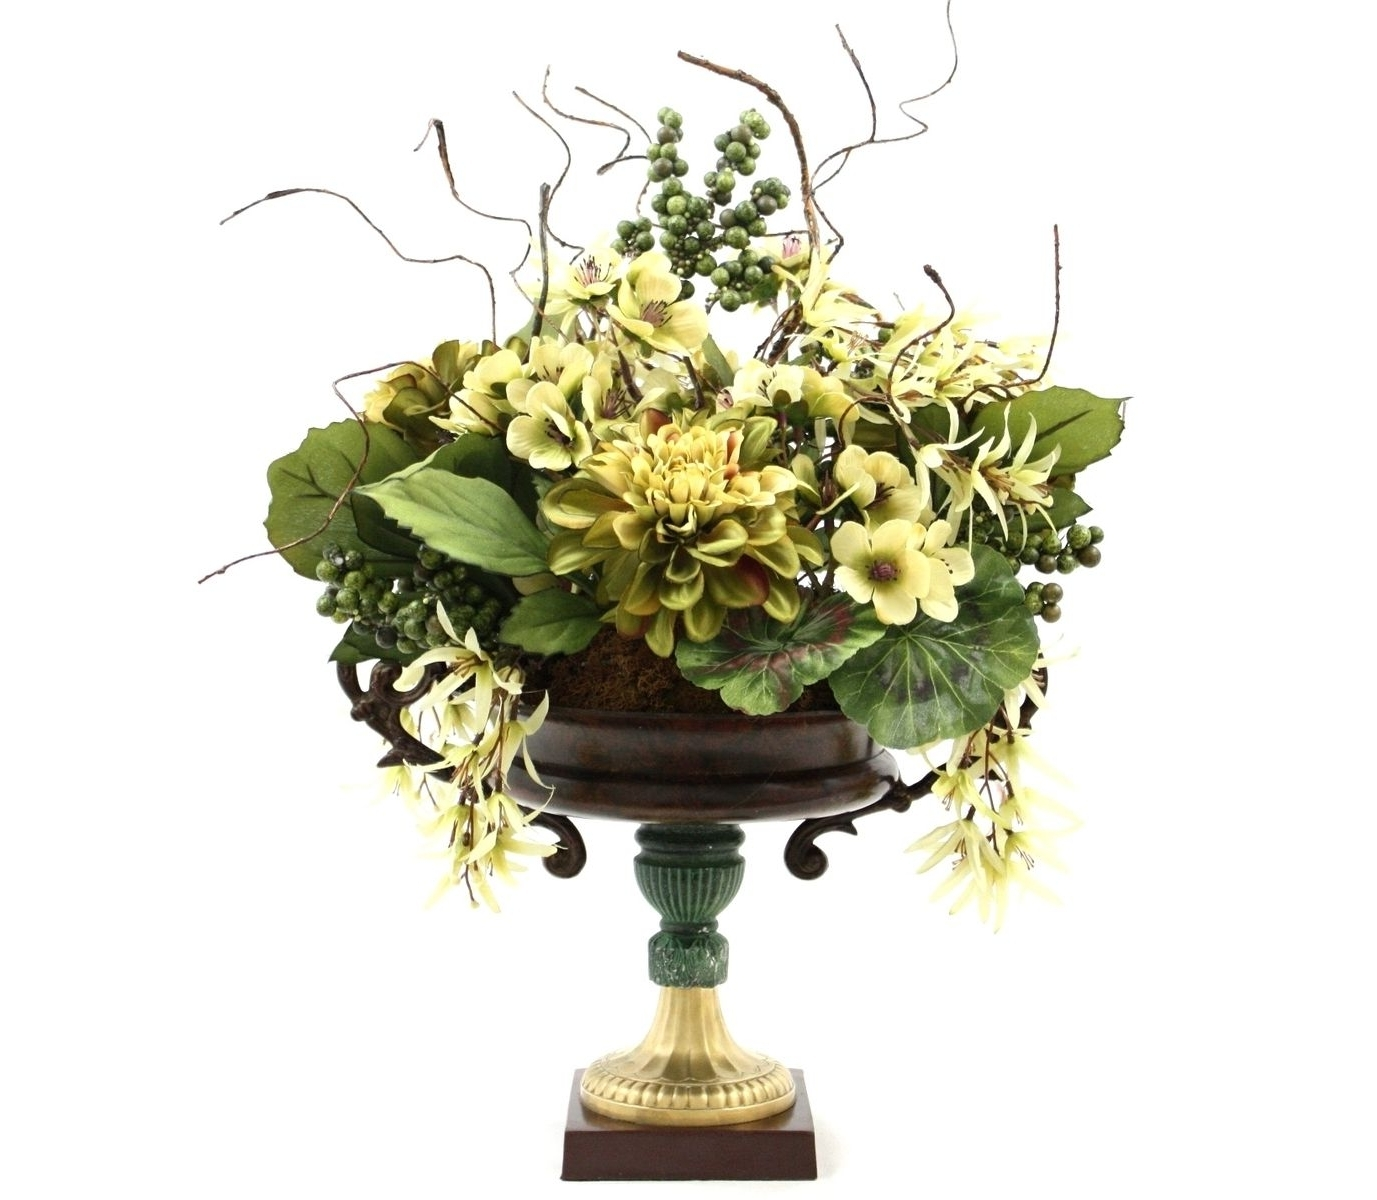 Popular Hand Made Dining Table Centerpiece Silk Flower Arrangement, Home Pertaining To Artificial Floral Arrangements For Dining Tables (View 6 of 25)